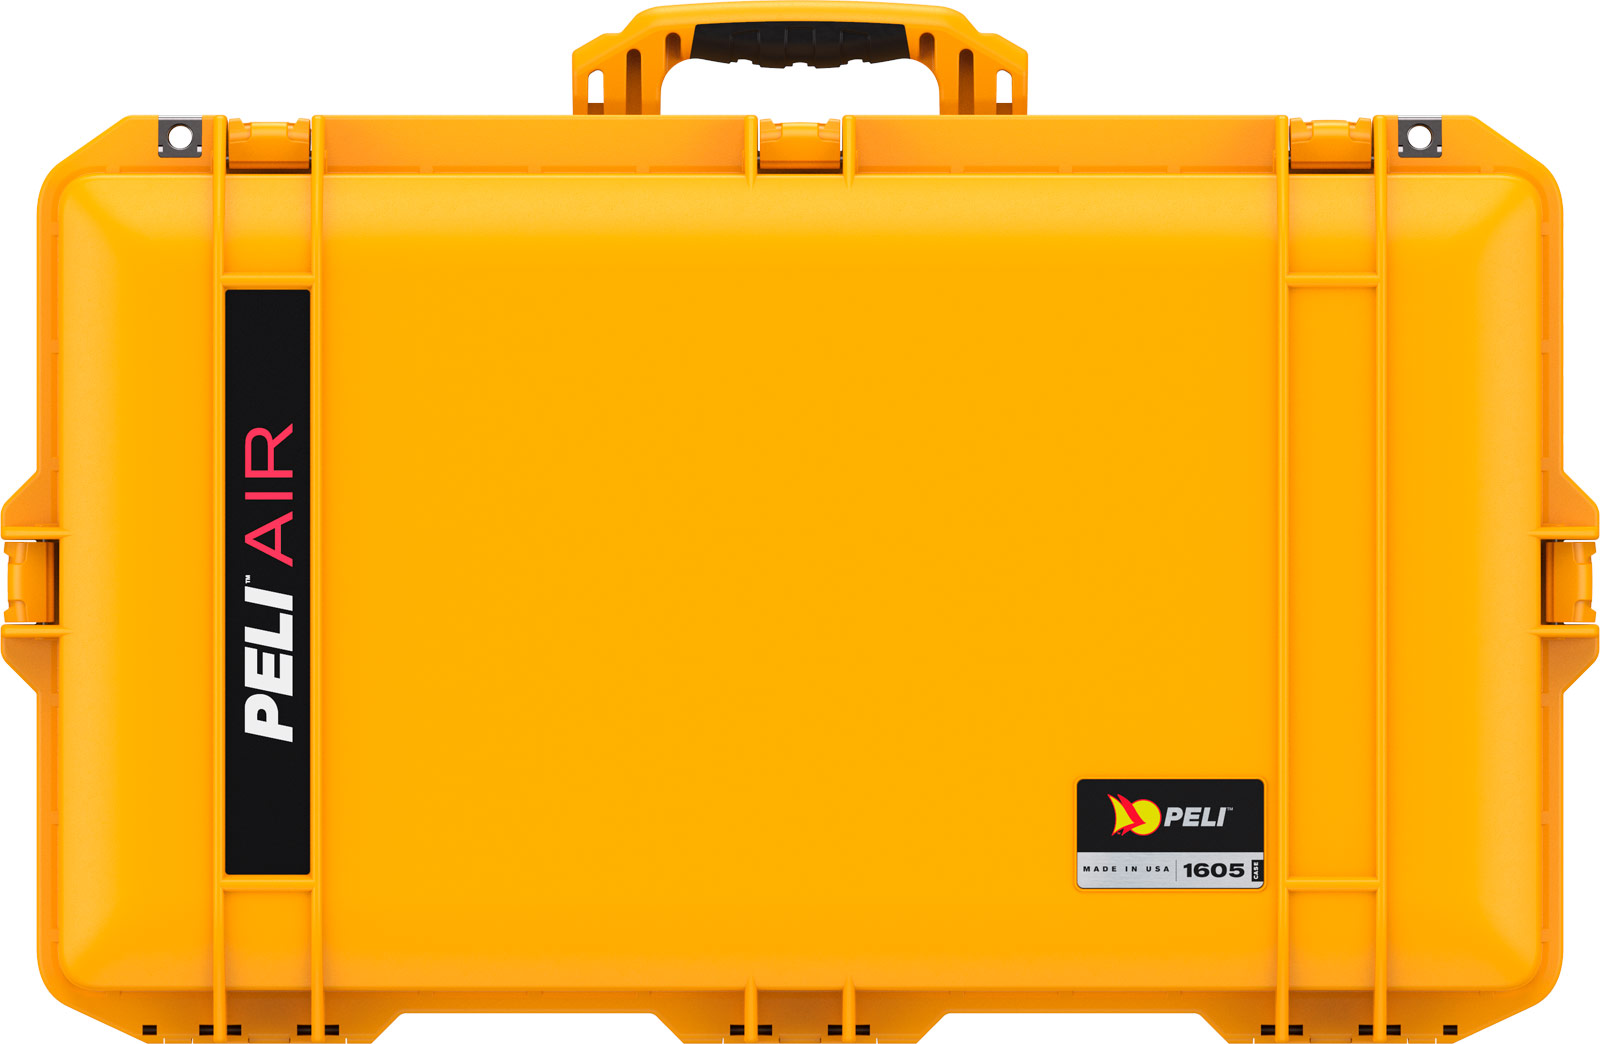 pelican 1605 air cases yellow case waterproof